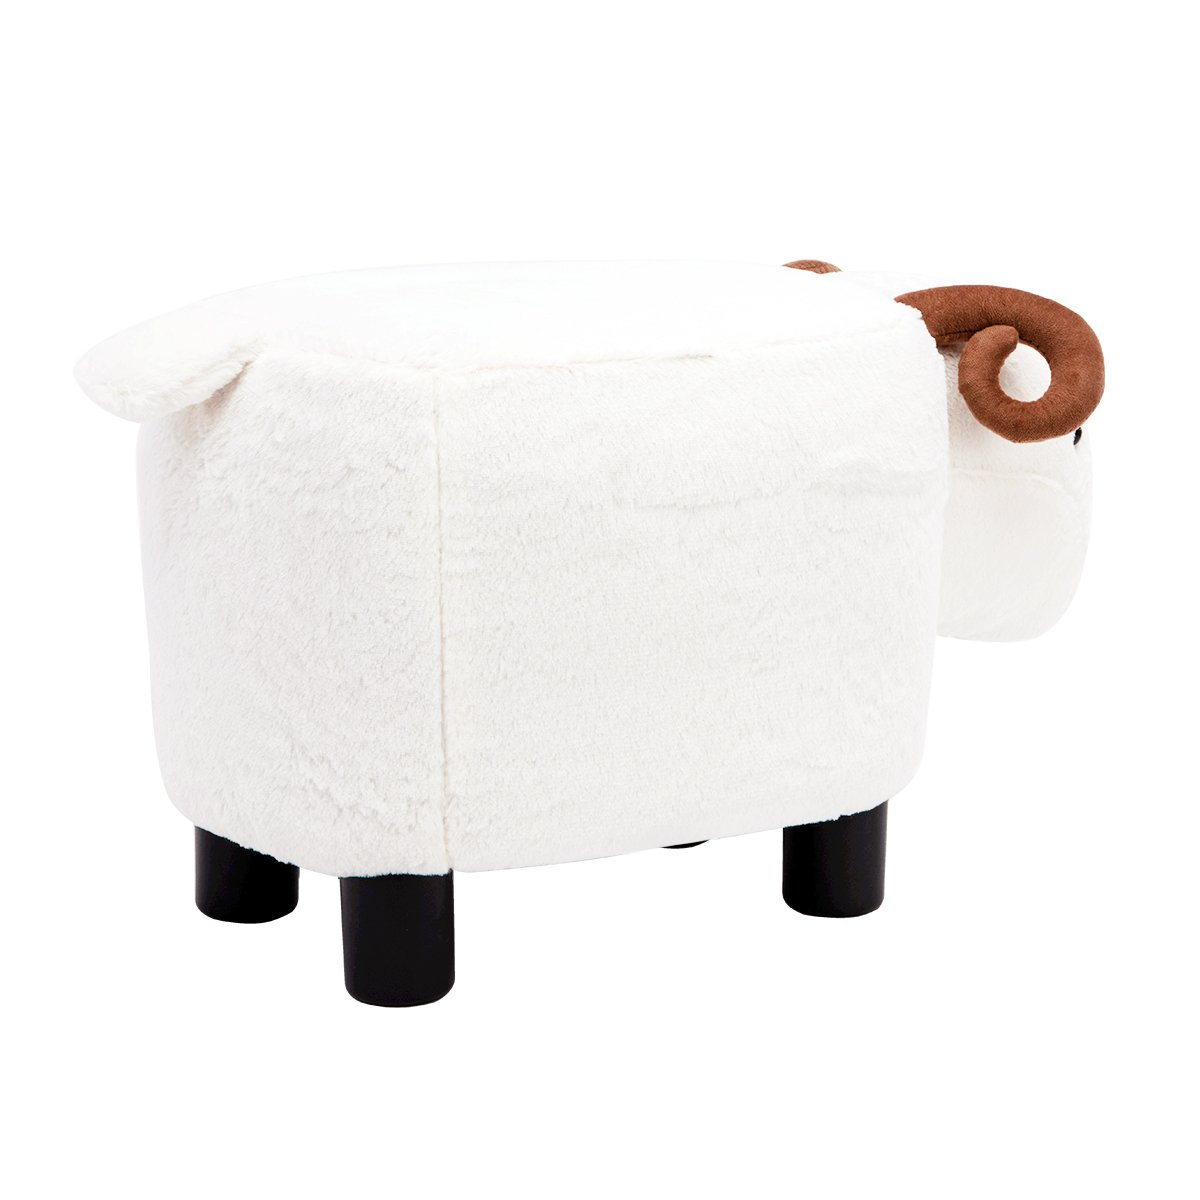 Brown Hippo Guteen Upholstered Ride-on Toy Seat Storage Ottoman Footrest Stool with Vivid Adorable Animal-Like Features